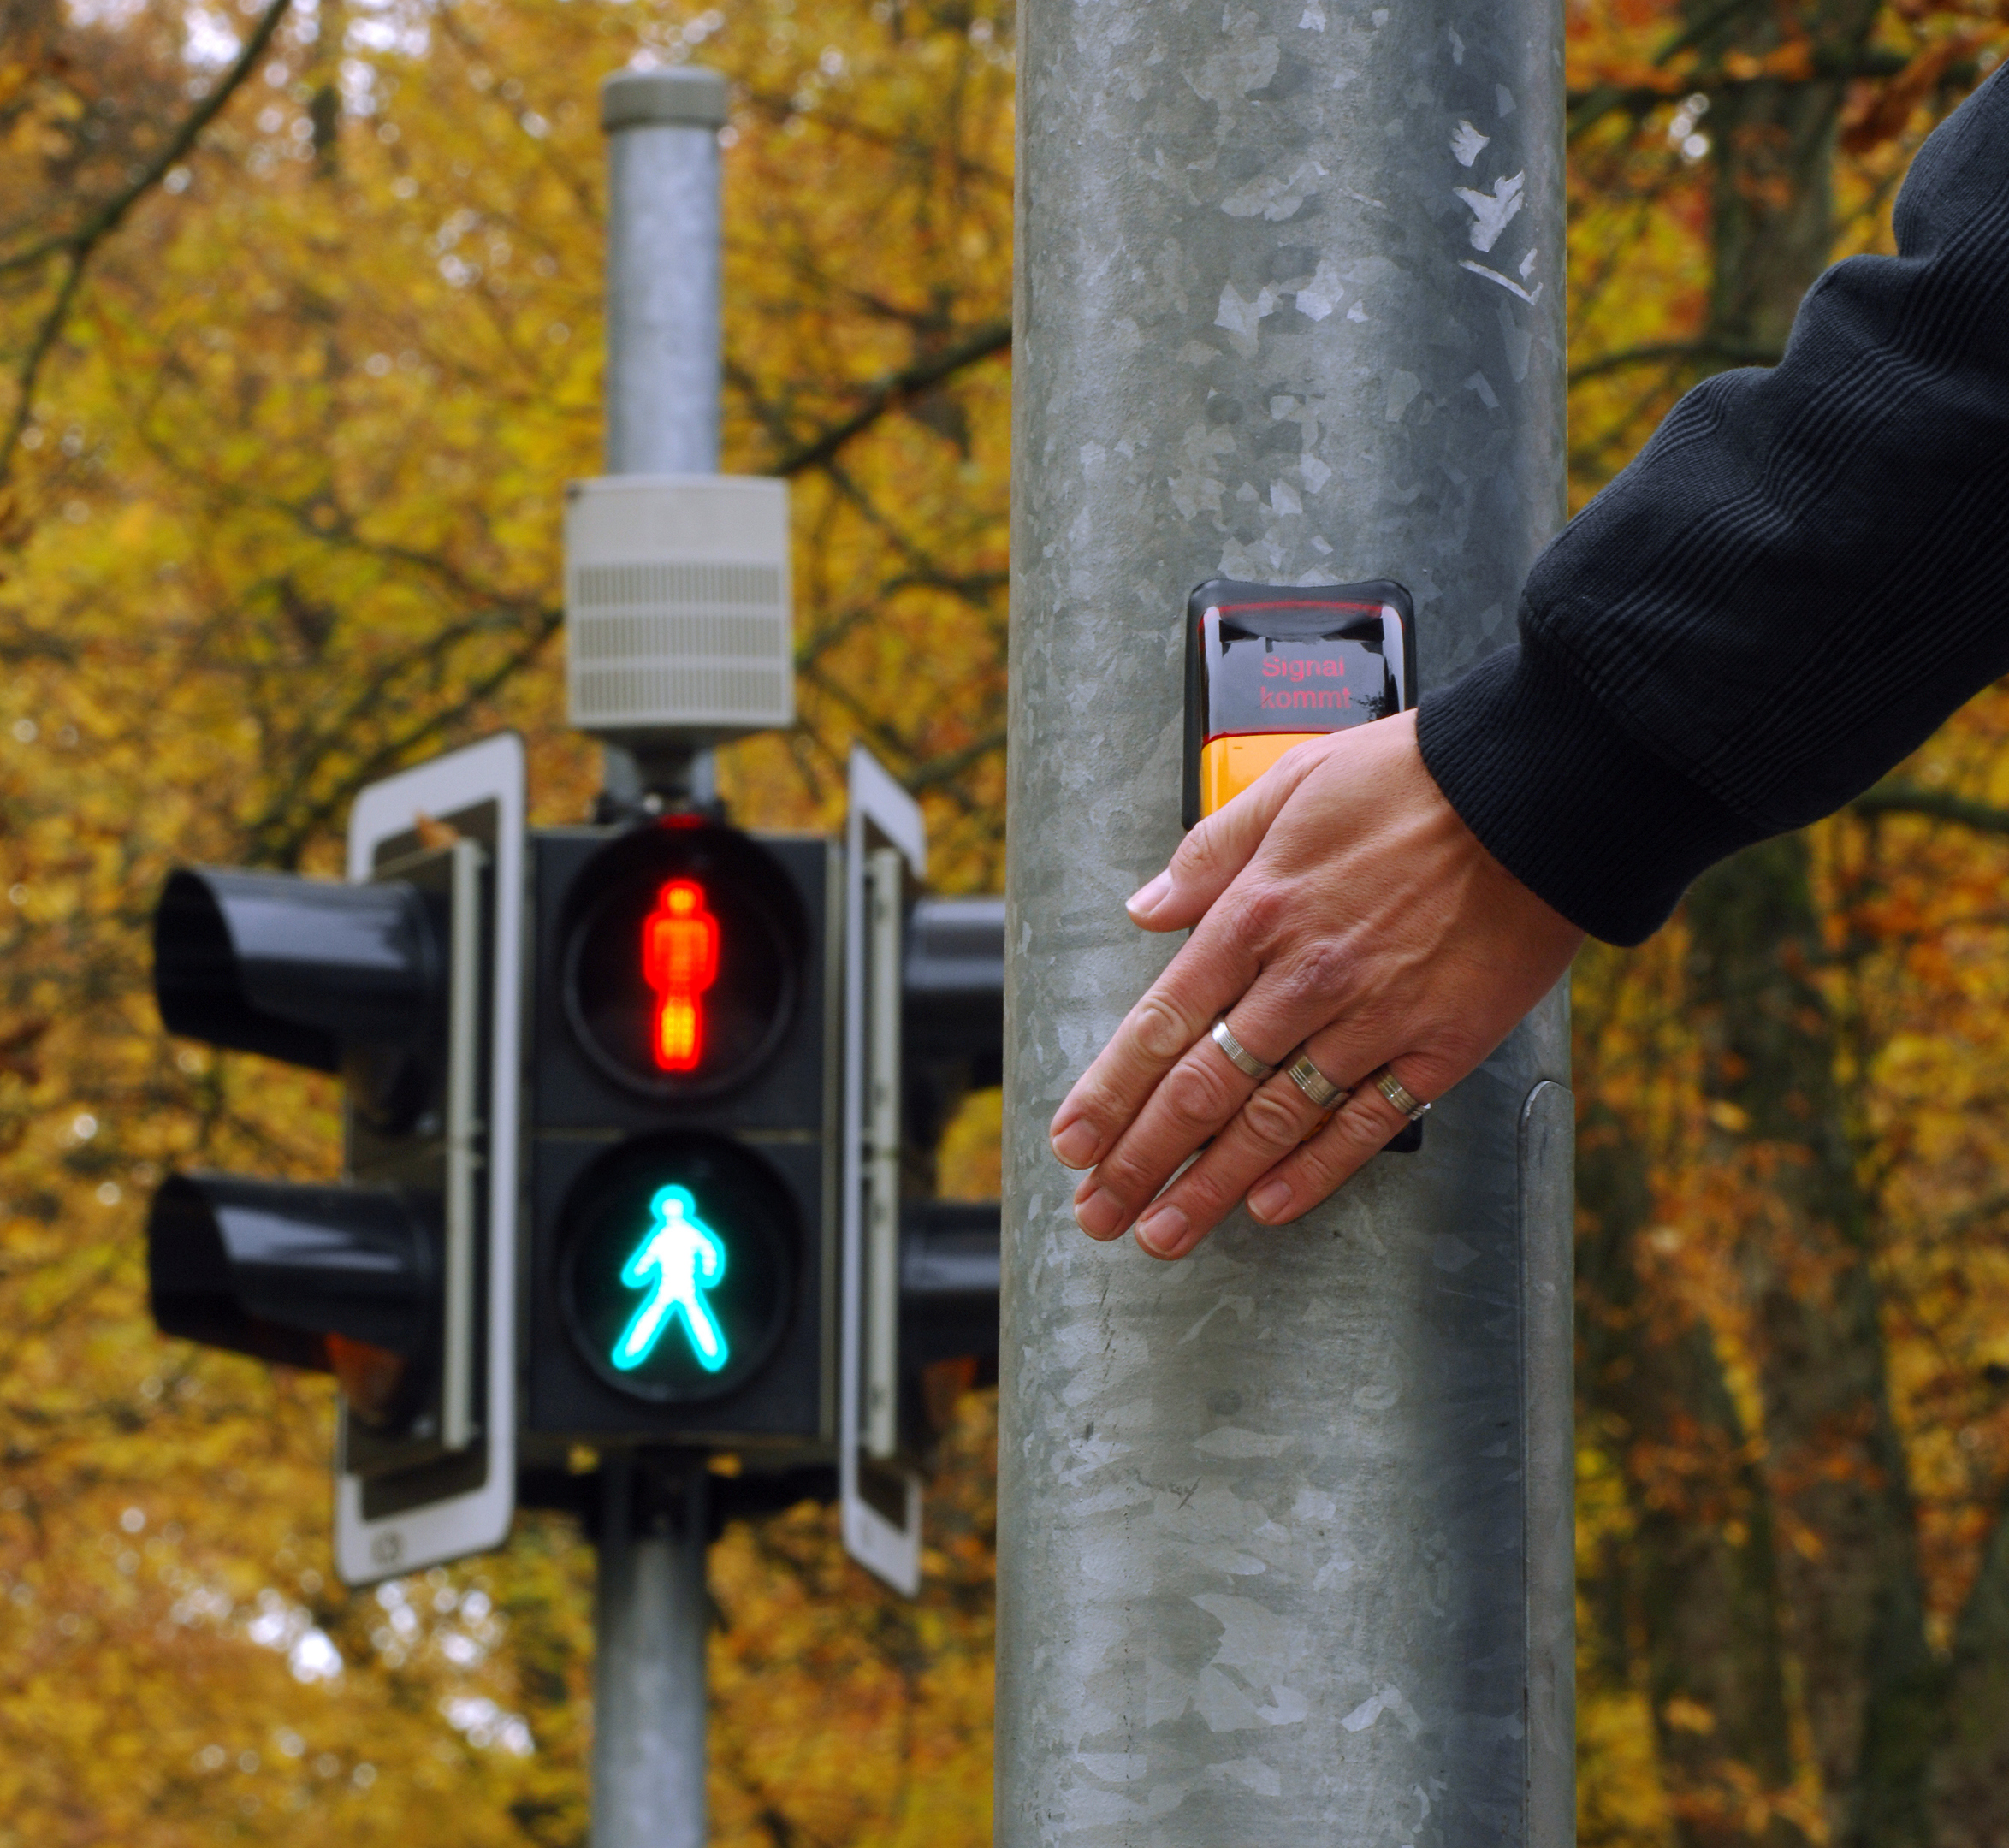 Green Man crossings are leaving people feeling 'isolated' and 'embarrassed' (iStock)